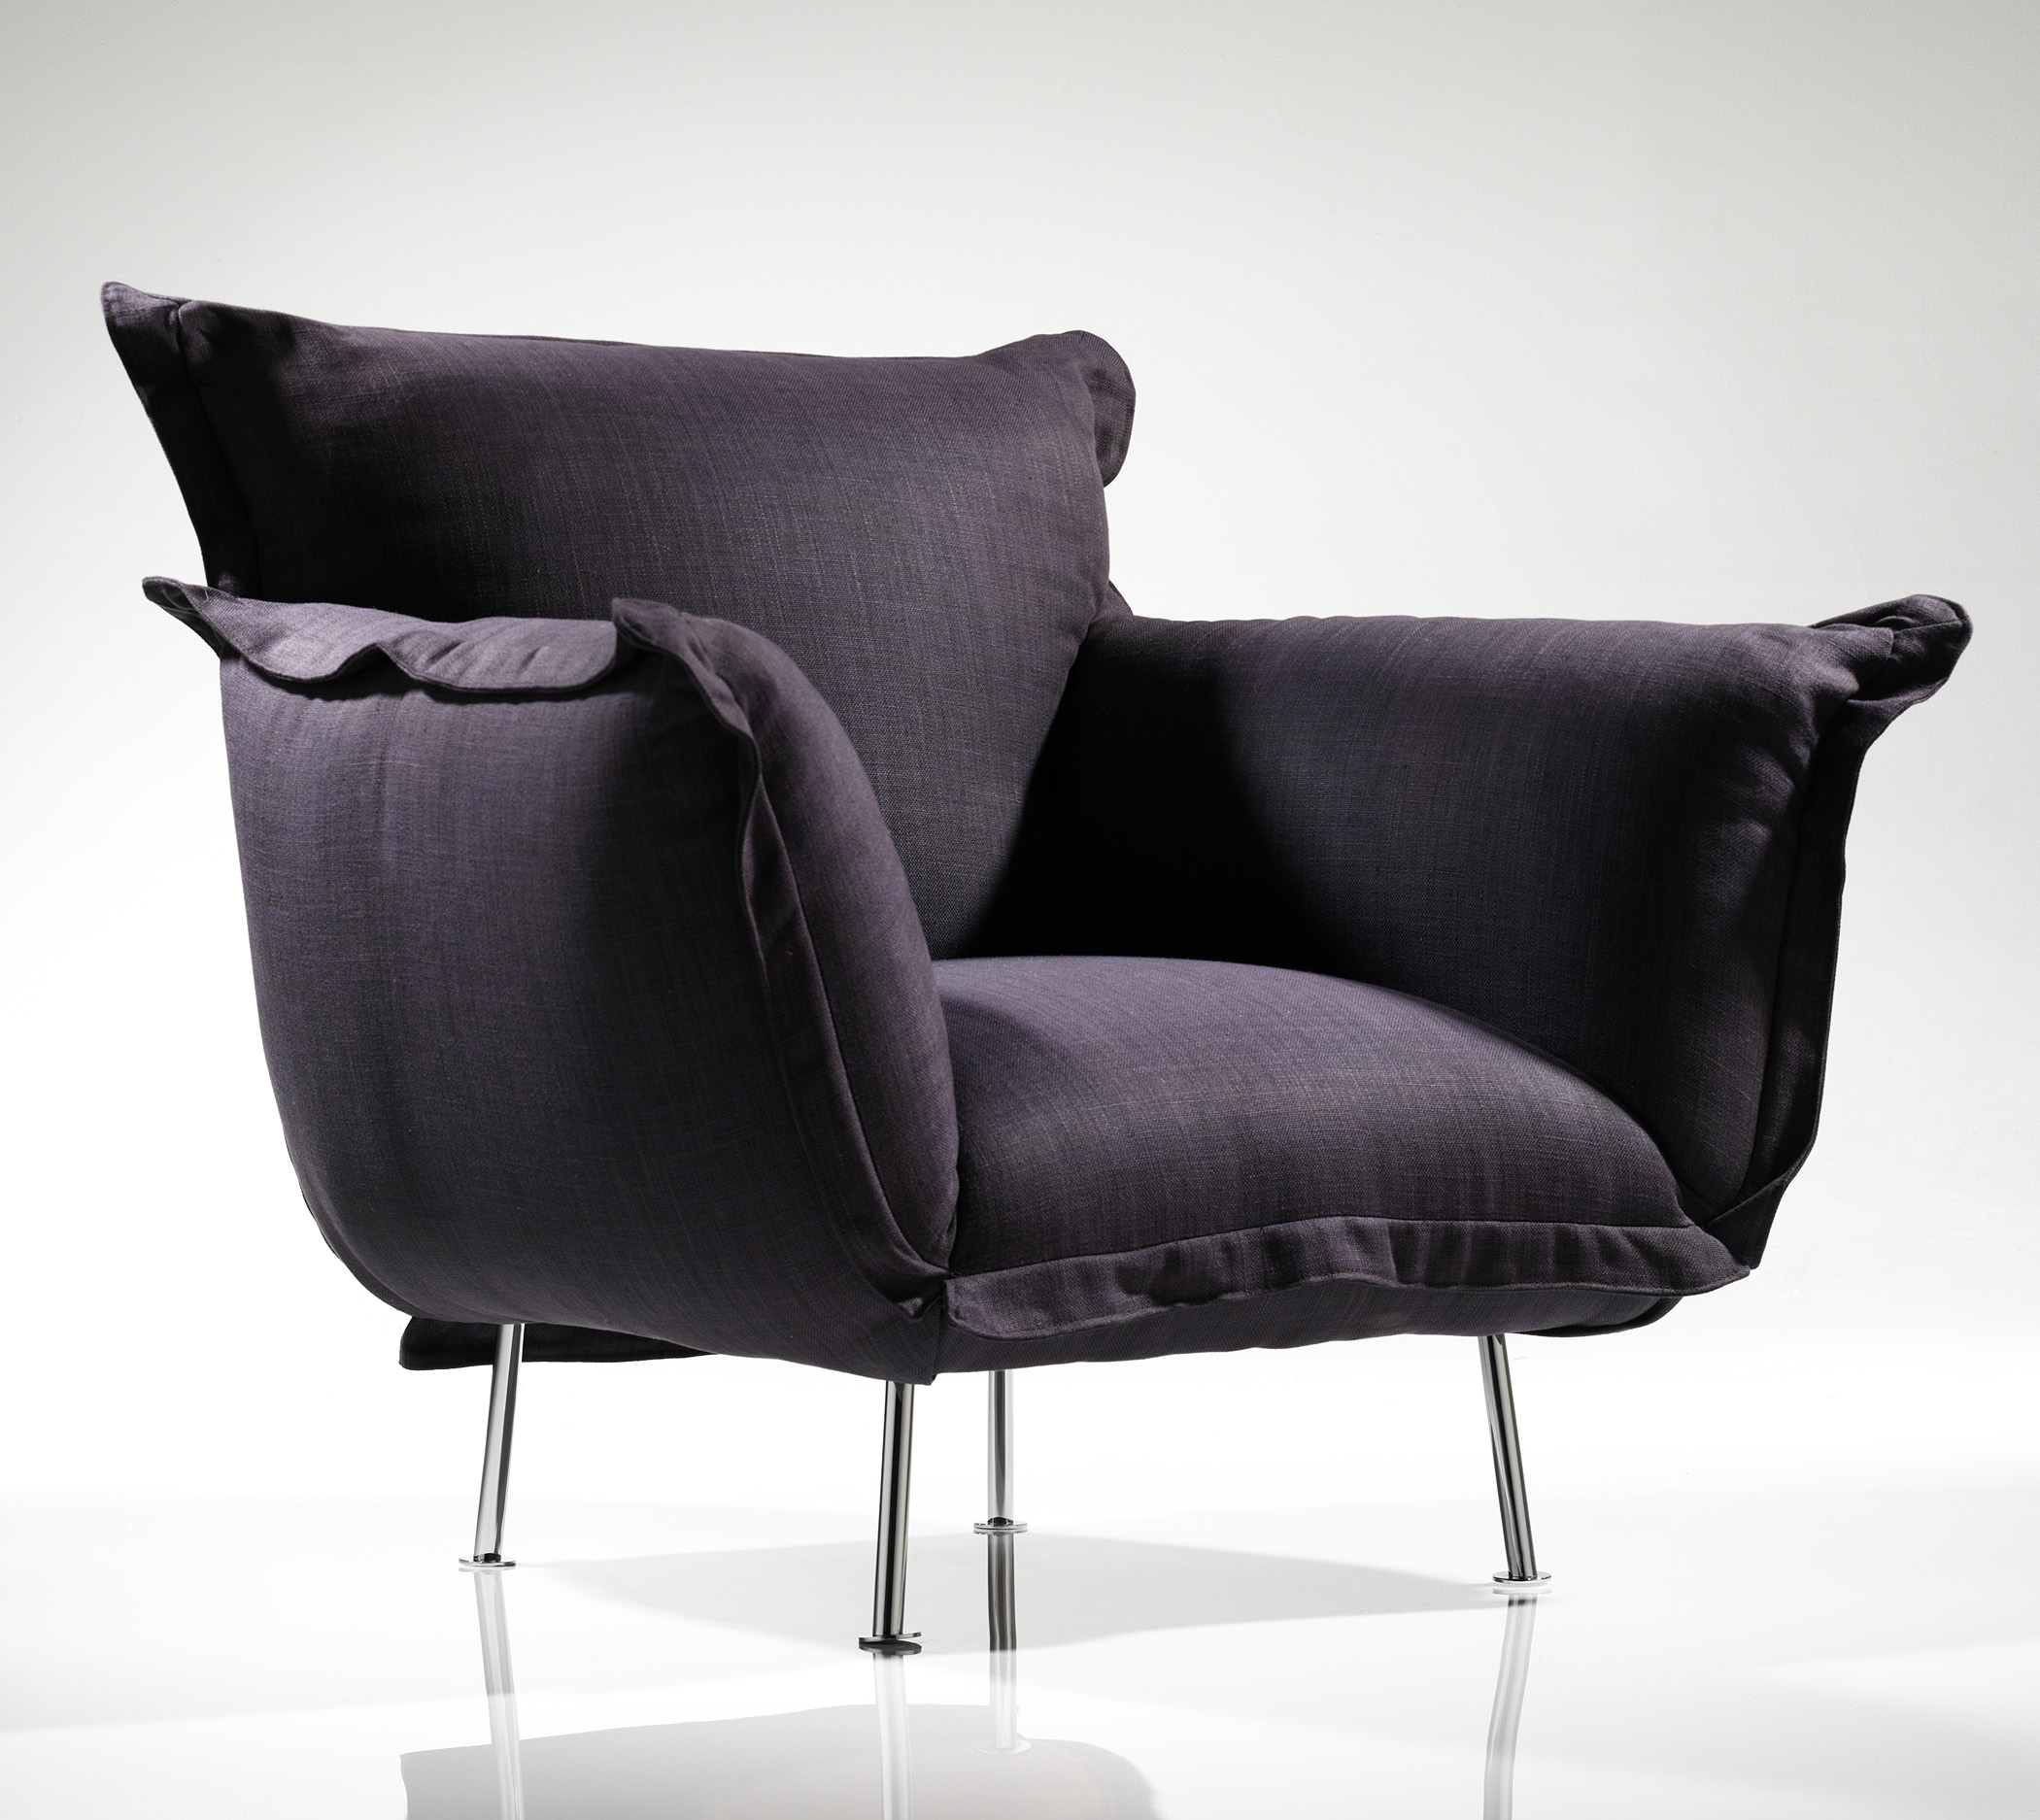 bedroom chair m&s banquet hall covers conran m s what going on at the blog 999 available from